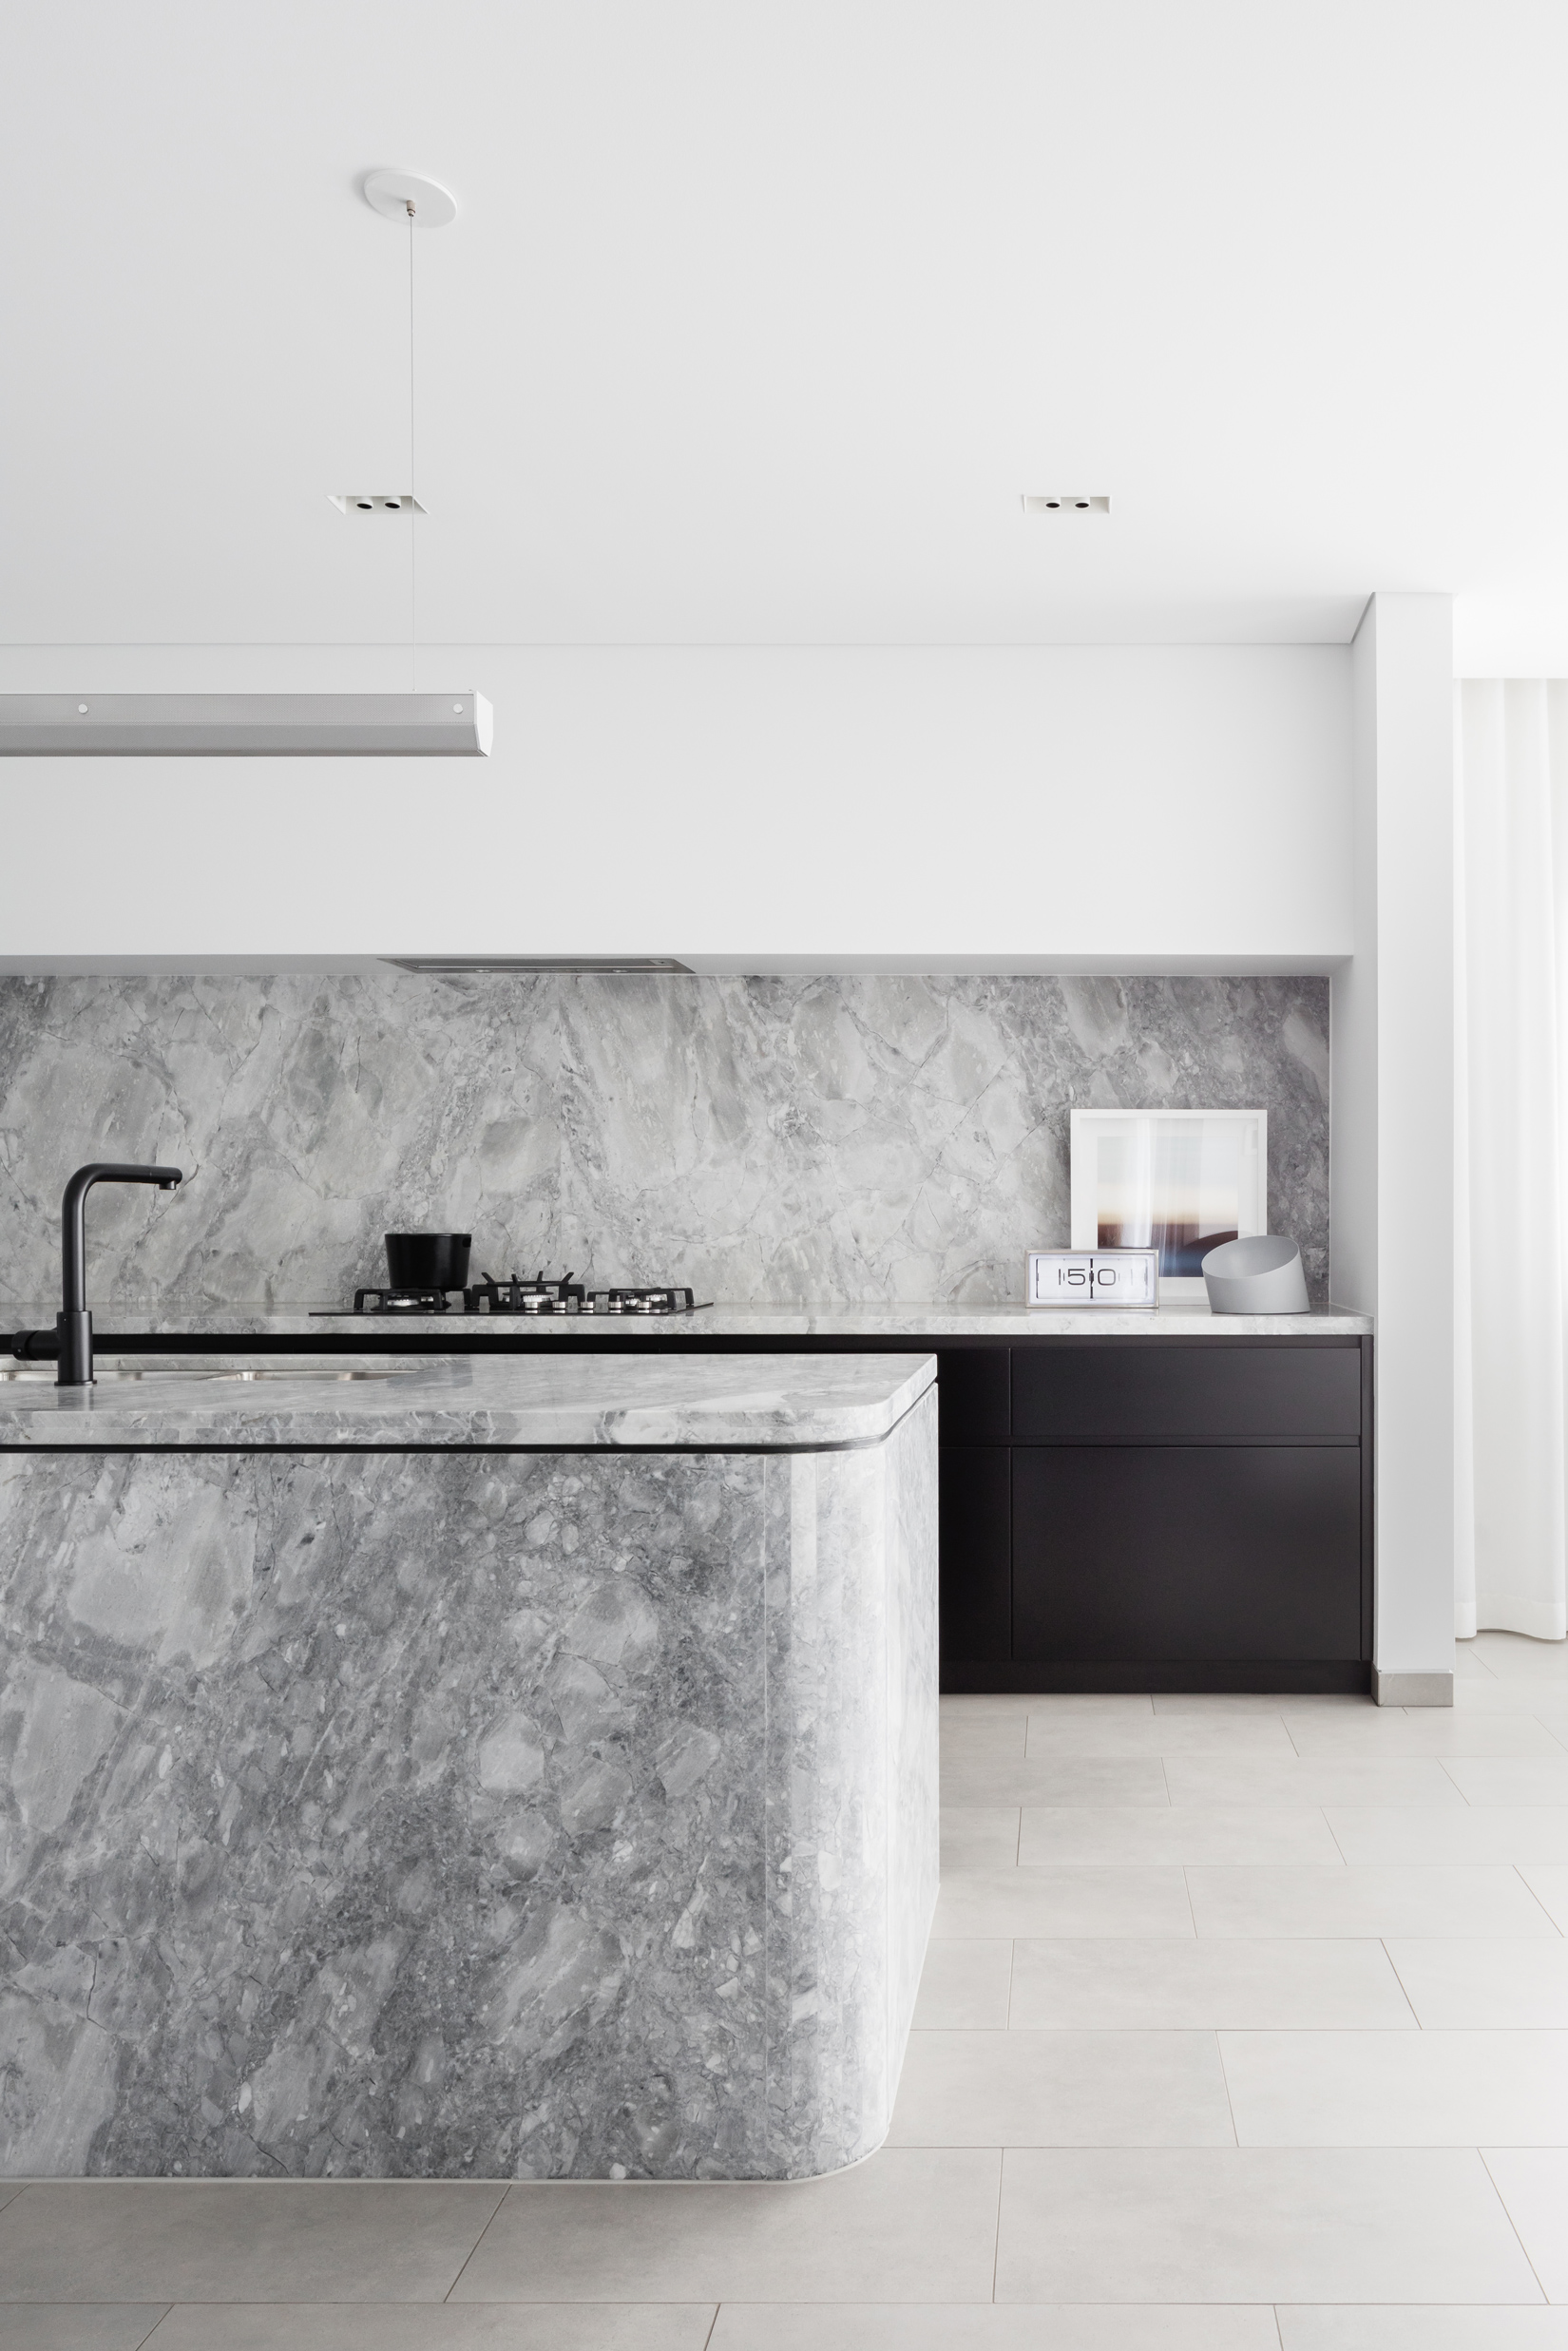 Broad Residence By Baldwin & Bagnall The Local Project Feature Melbourne, Victoria, Australia Image 1